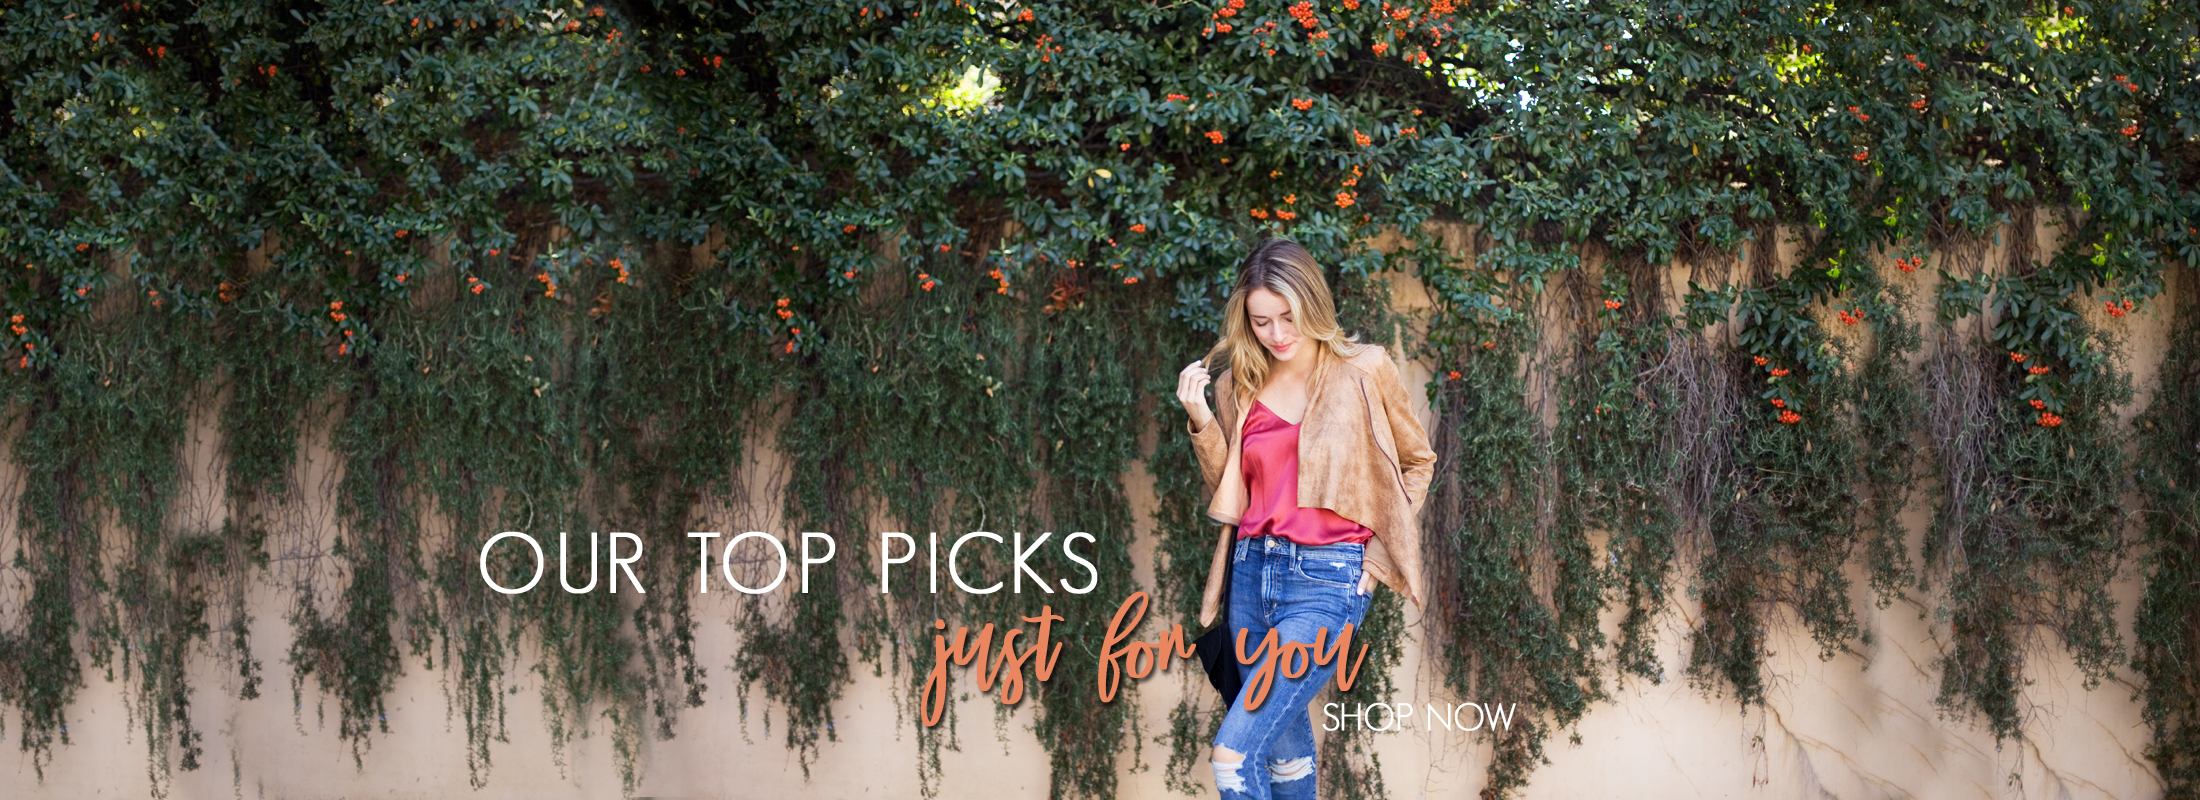 our top picks just for you shop now